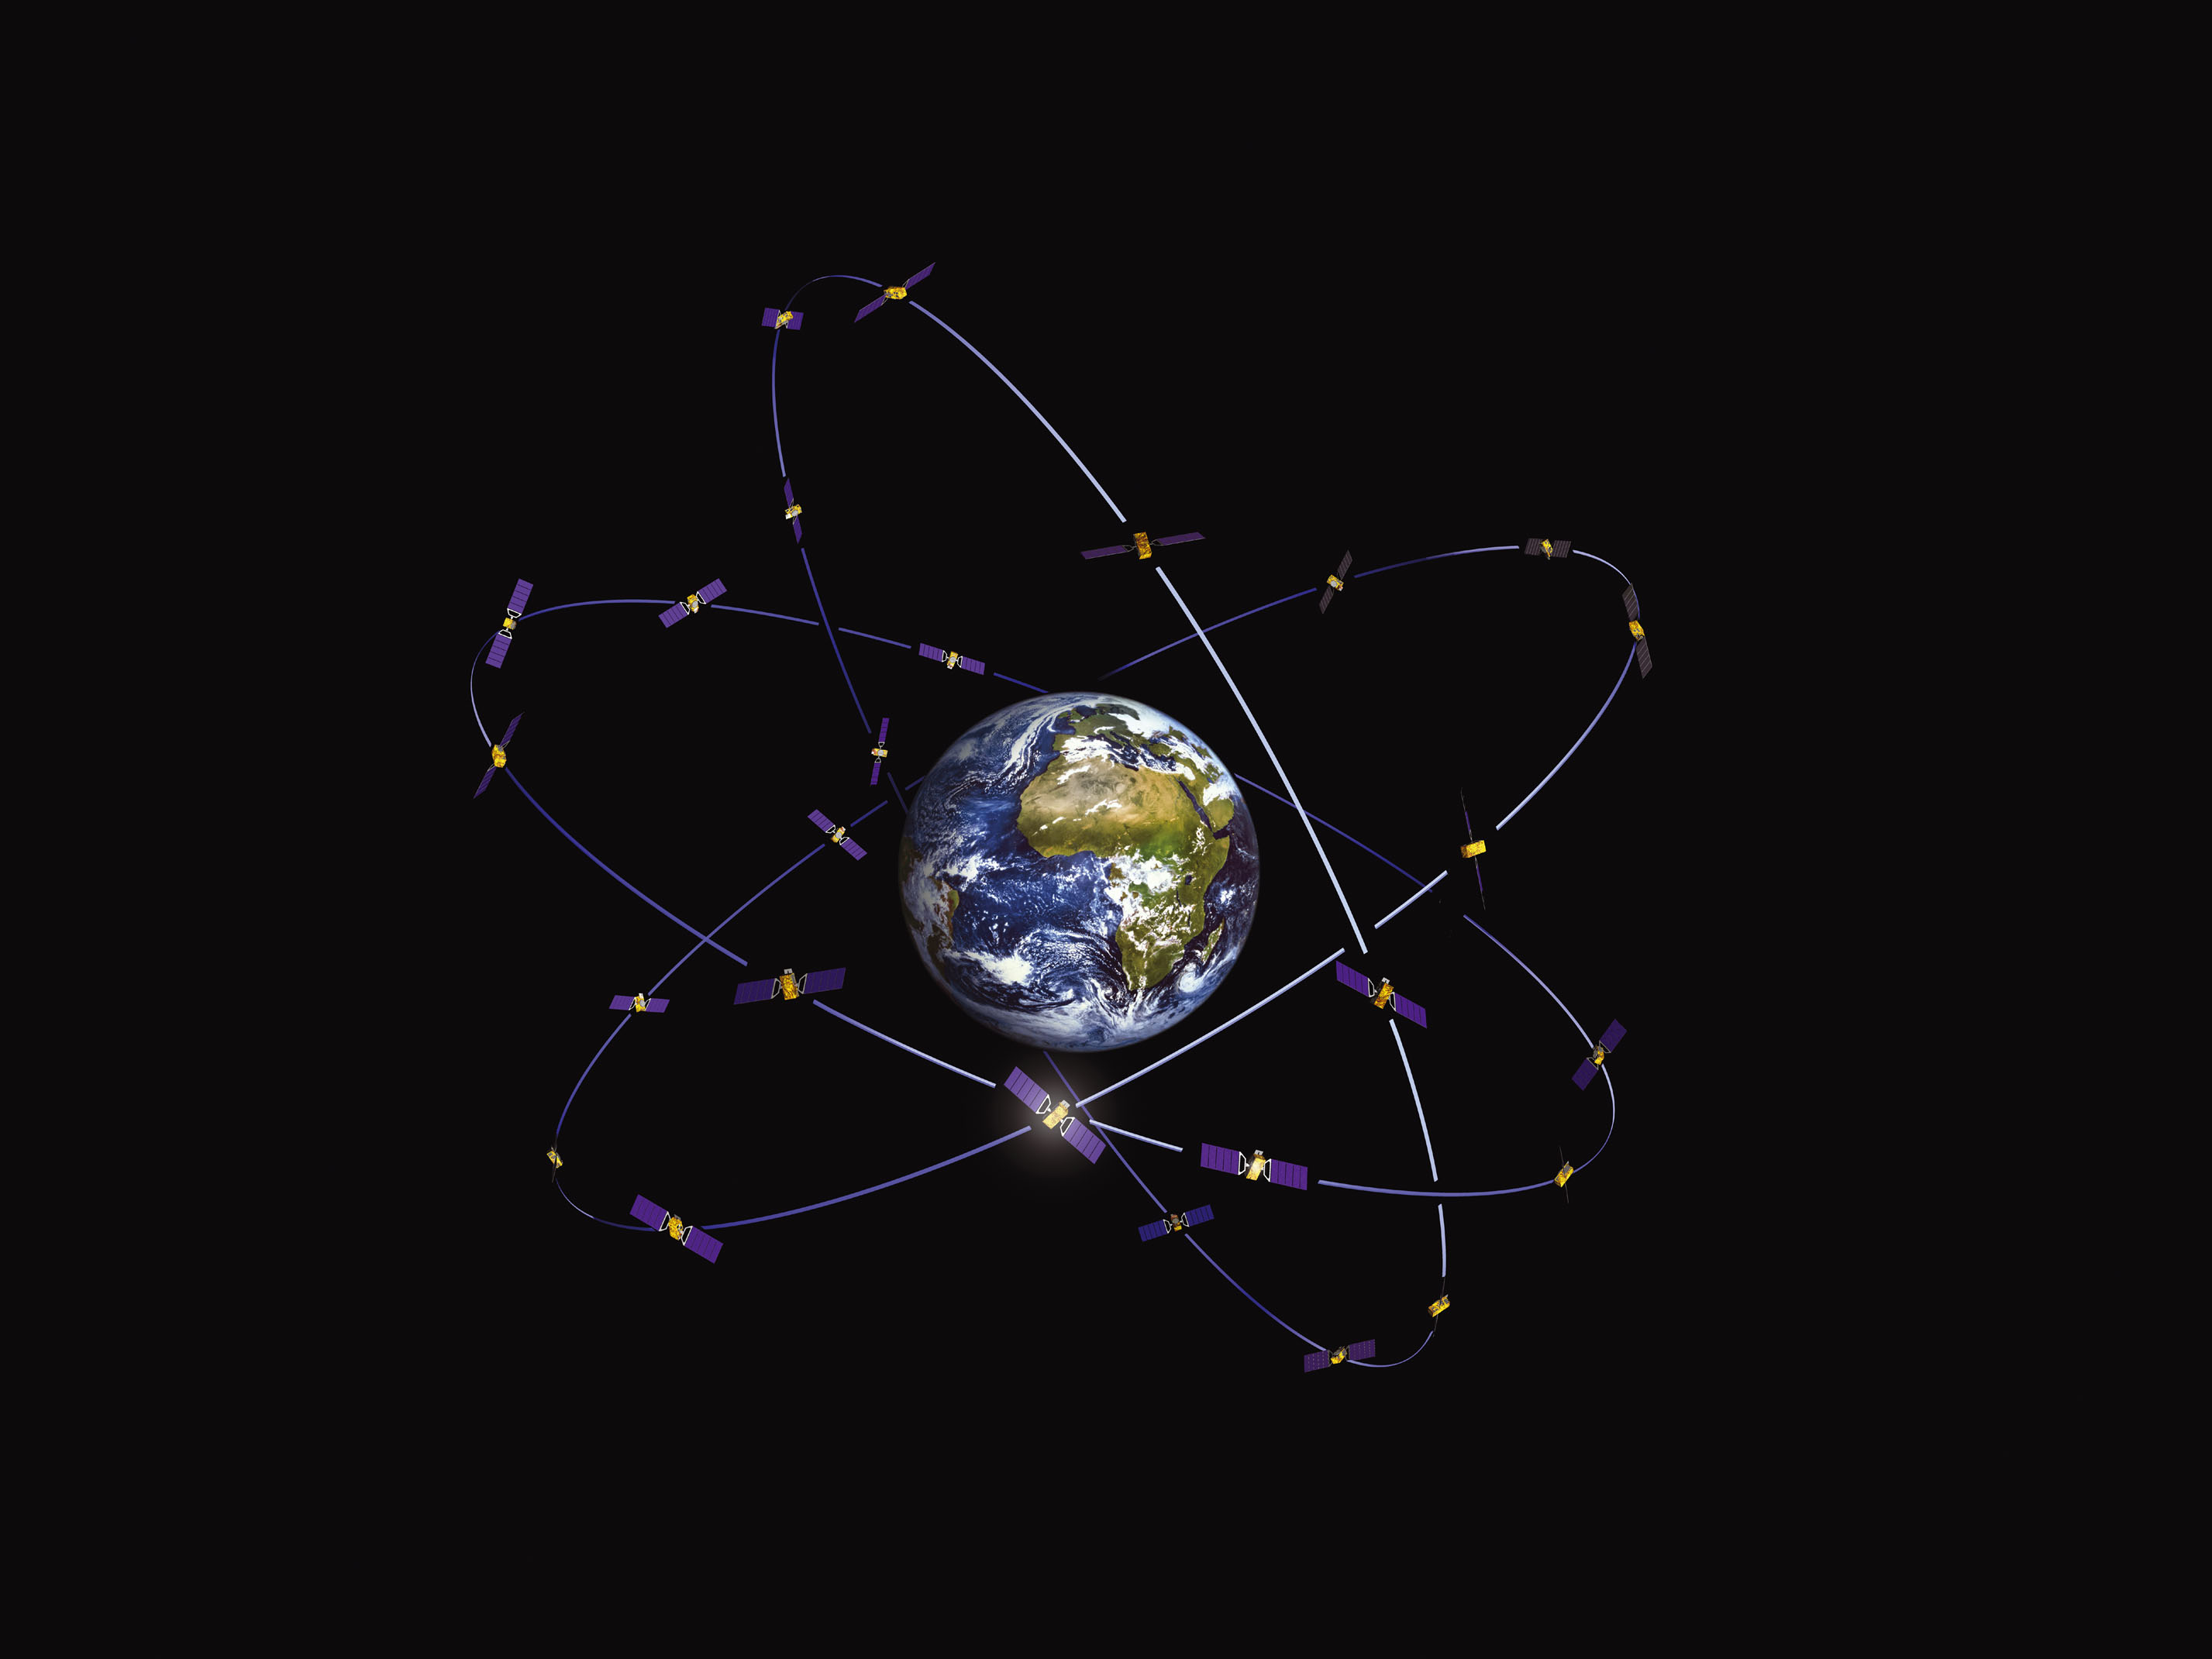 galileo_constellation_-_please_credit_esa